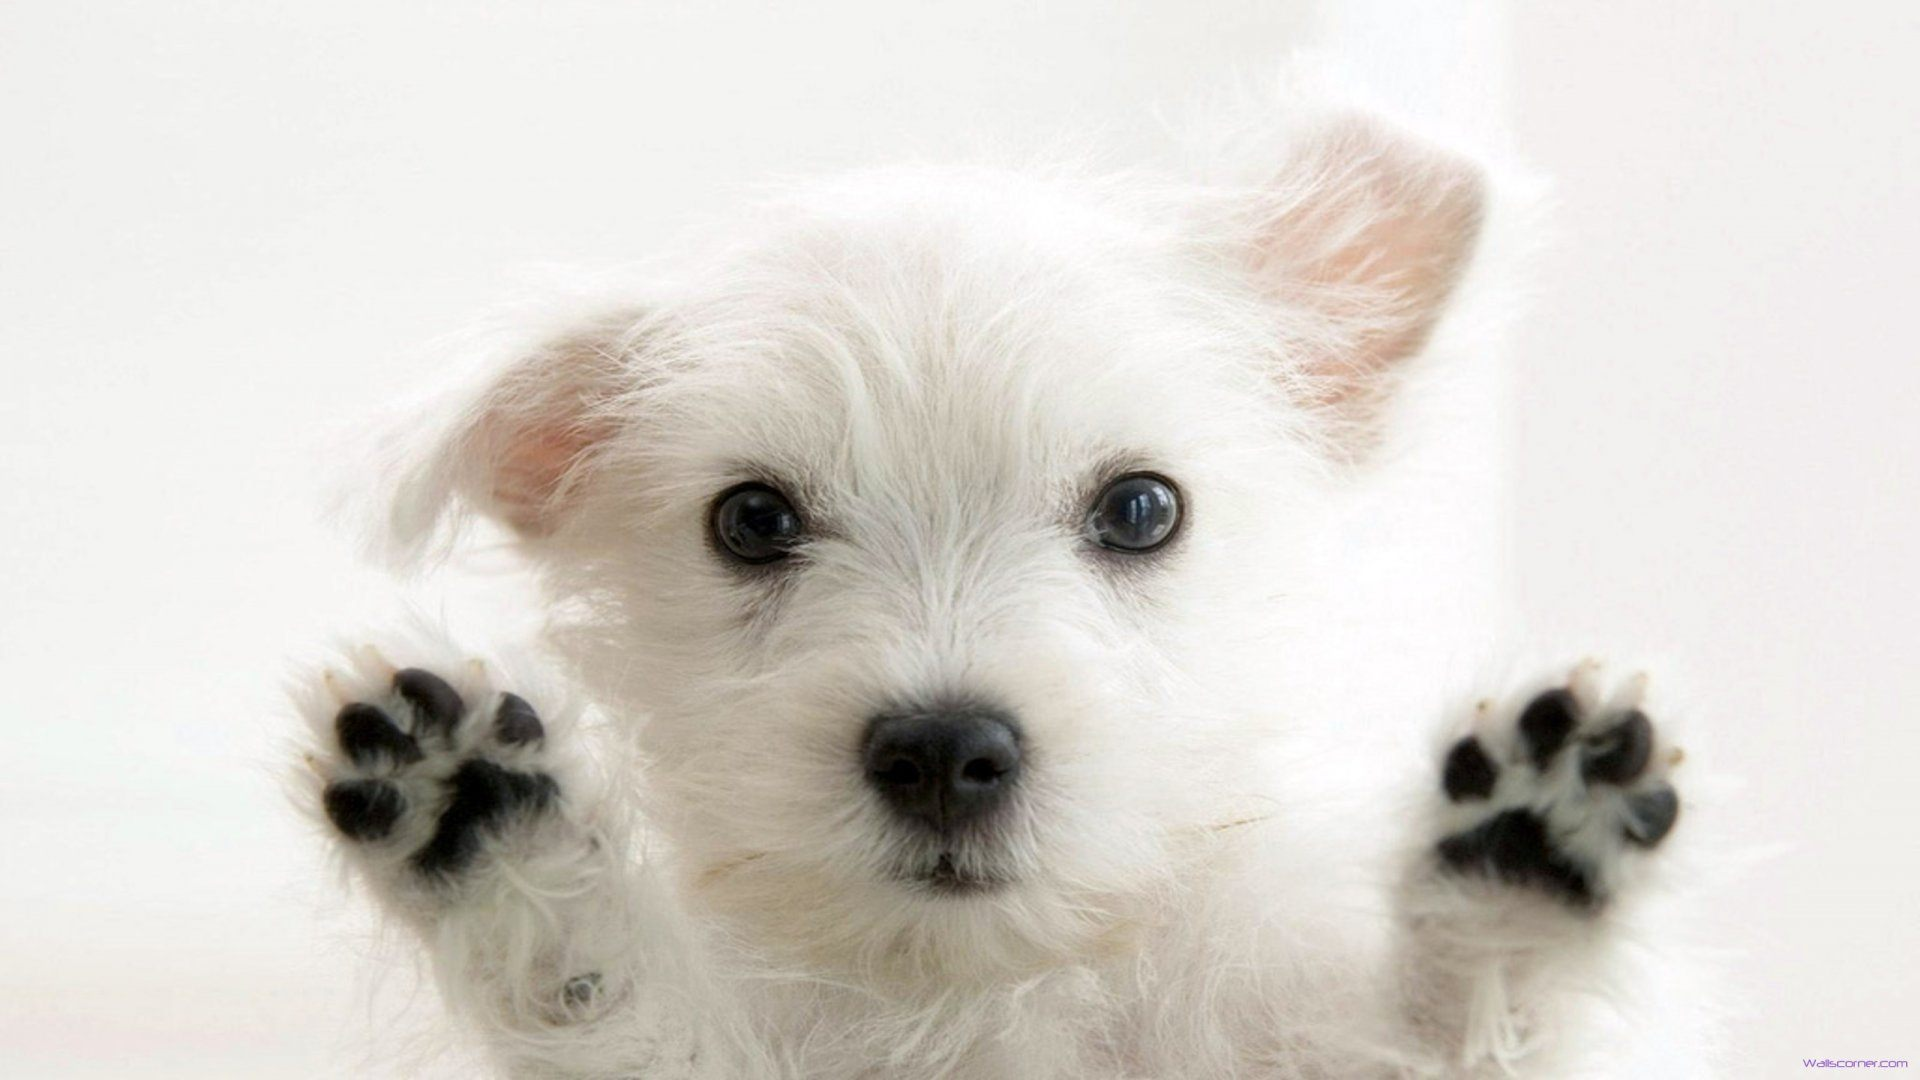 Cute Puppies and Kittens HD wallpapers collection #15